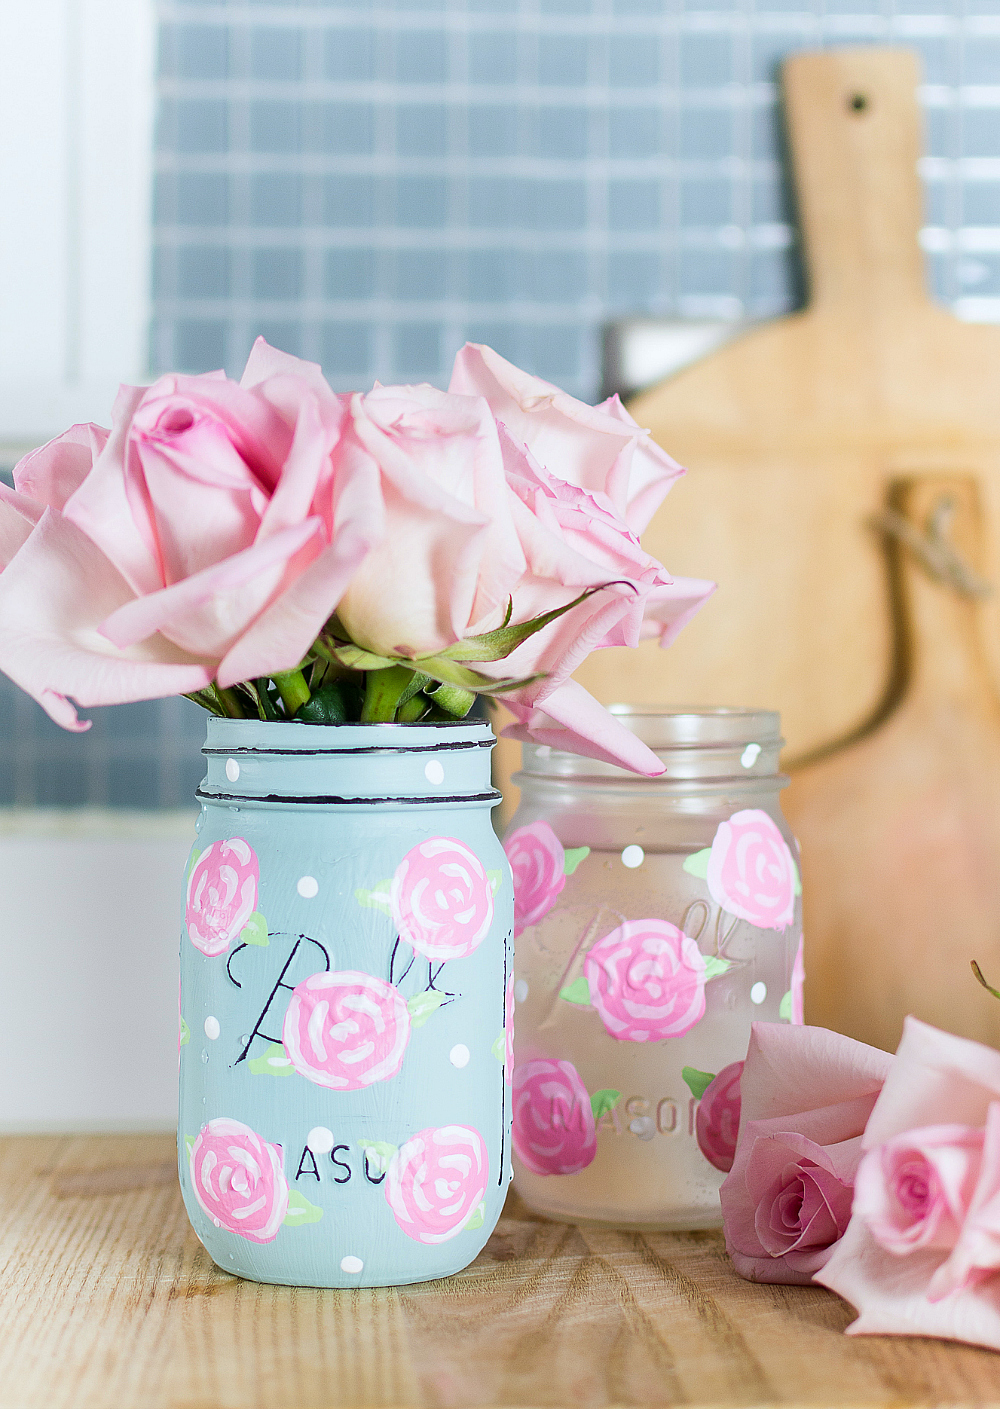 Painted Rose Flower on Mason Jar - Easy Rose Painting Tutorial